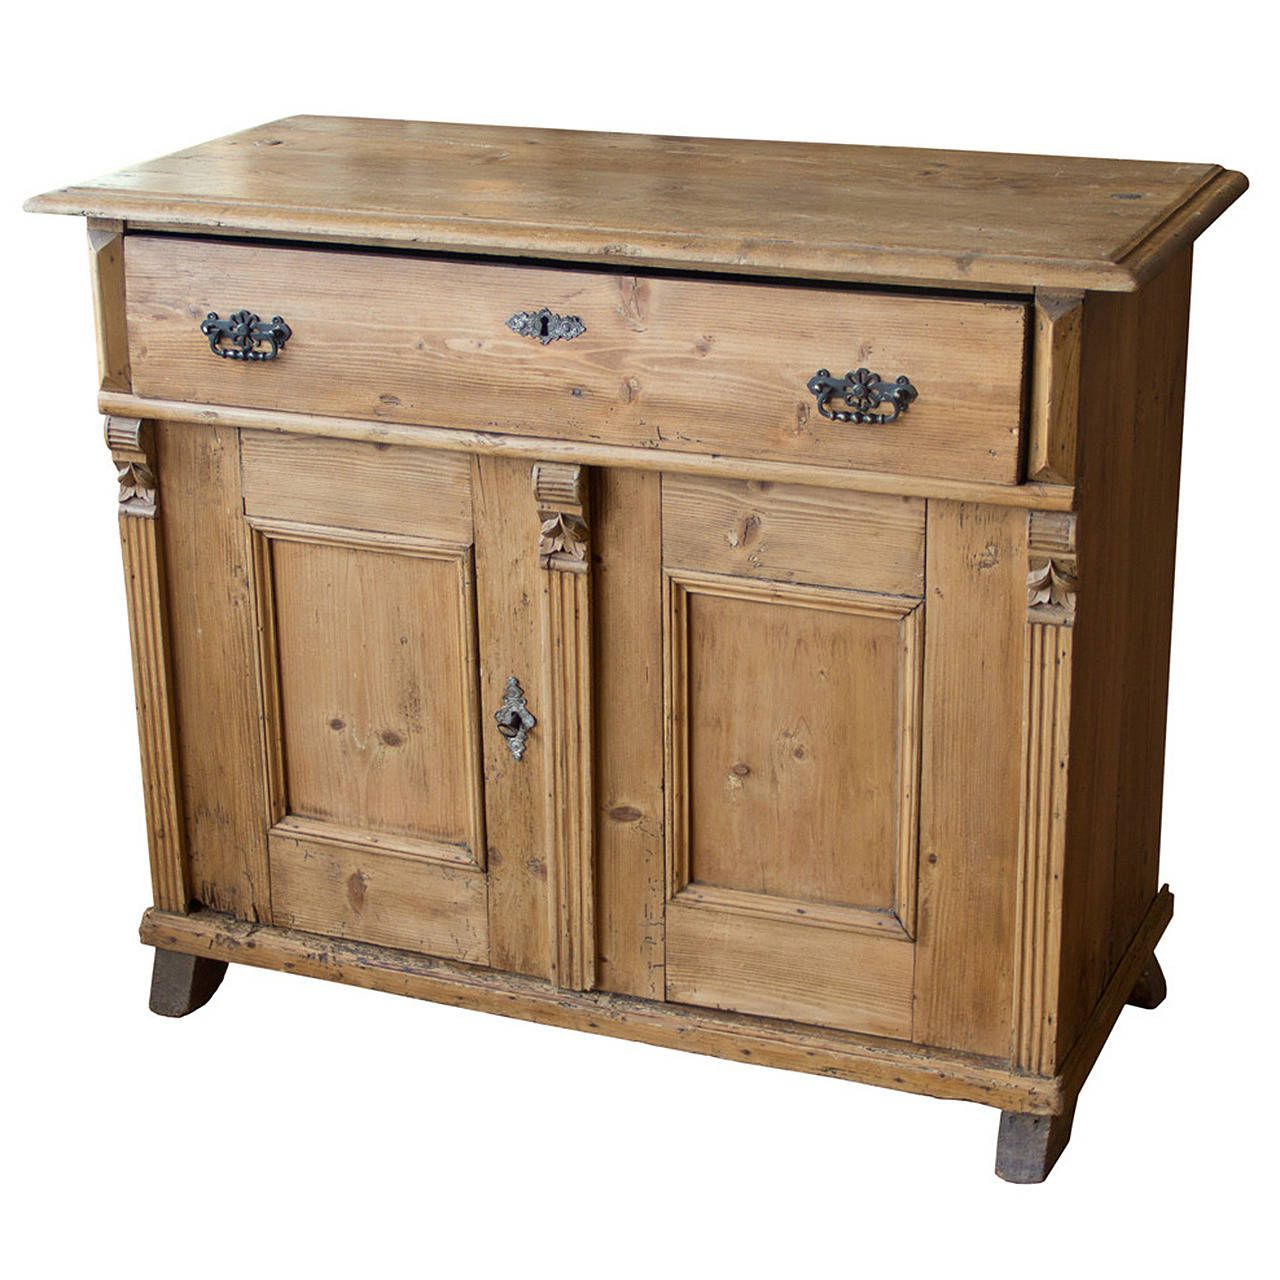 Widely Used Antique English Pine Cupboard In  (View 20 of 20)